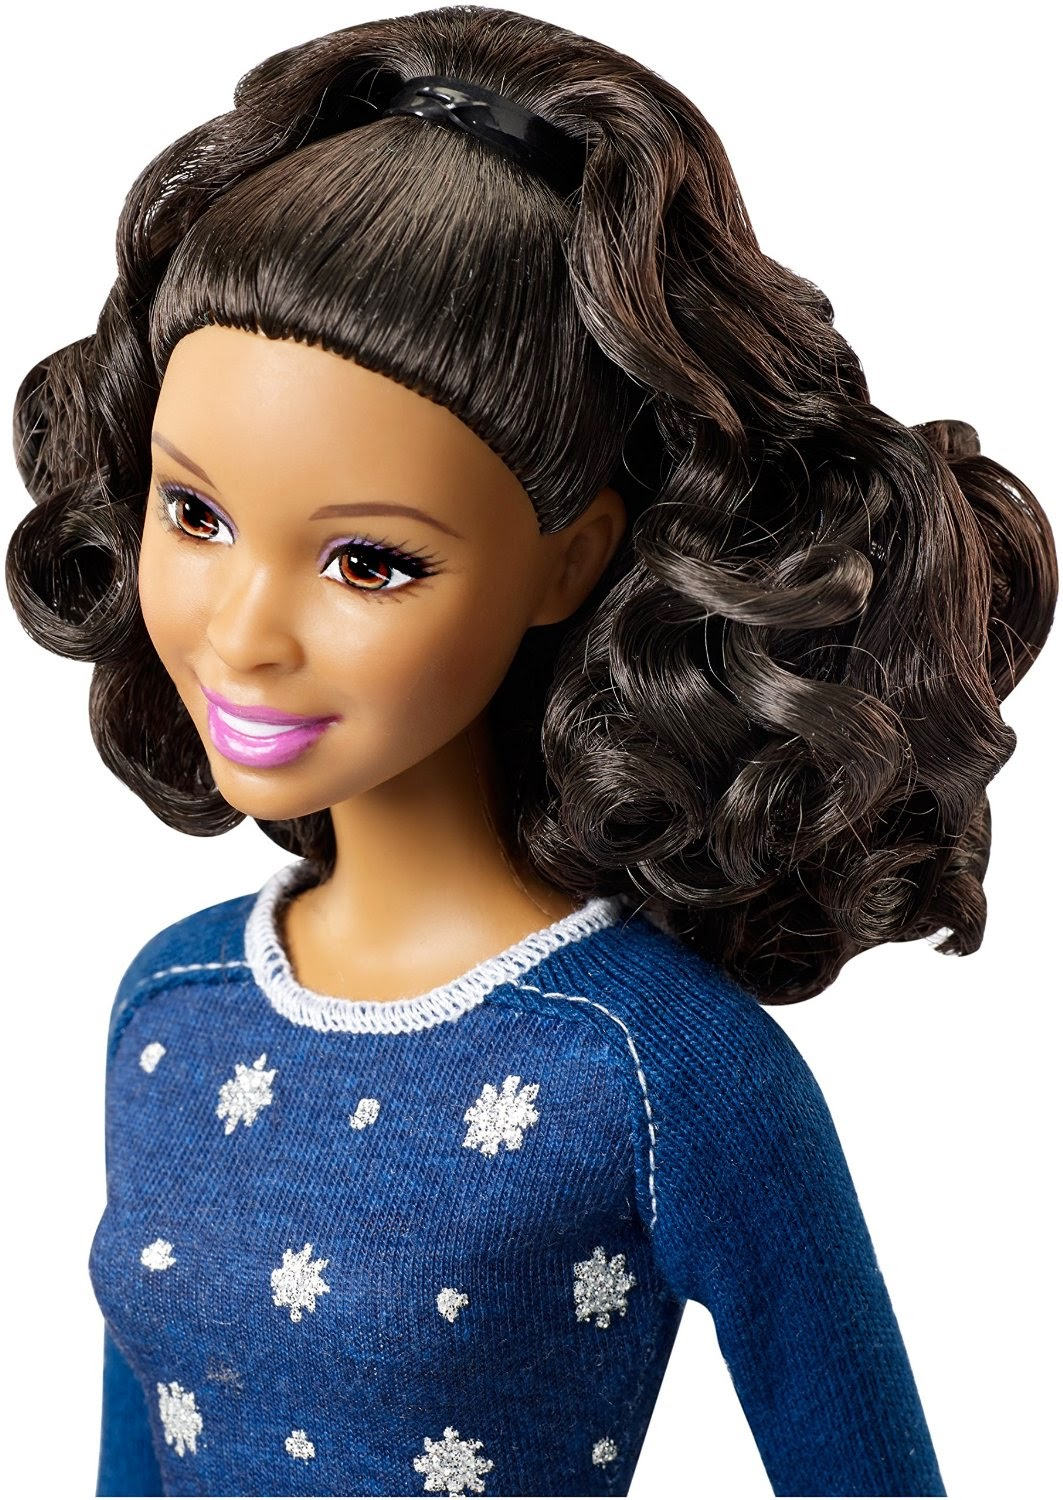 Barbie Fashionistas 2015 Review Nikki